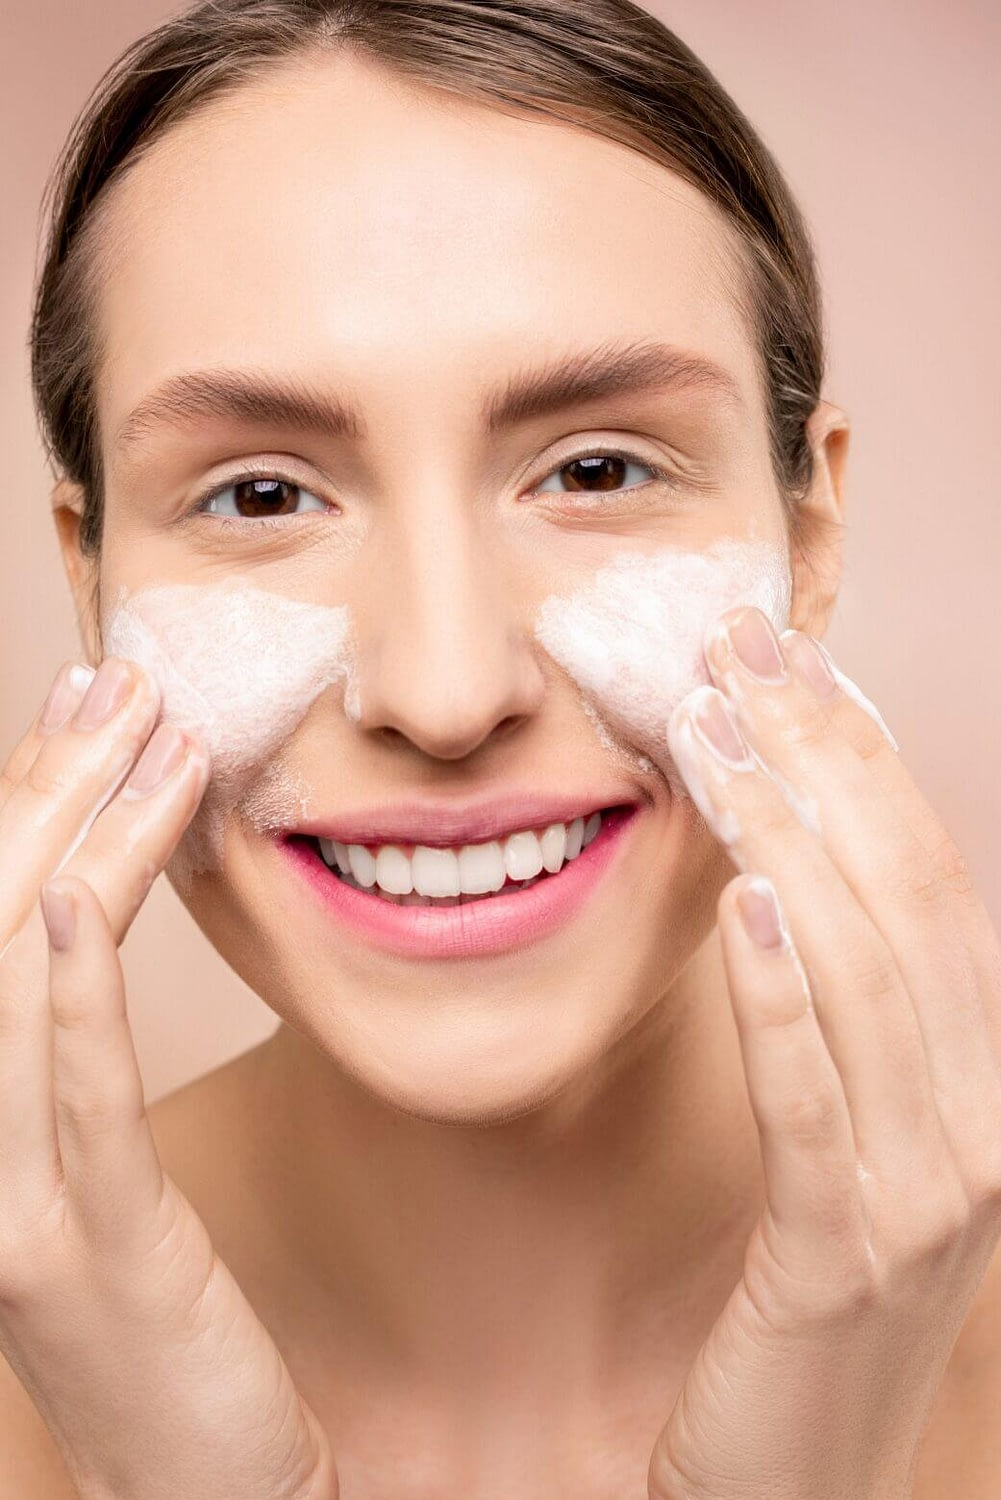 10 Cleansers For Sensitive Acne-Prone Skin